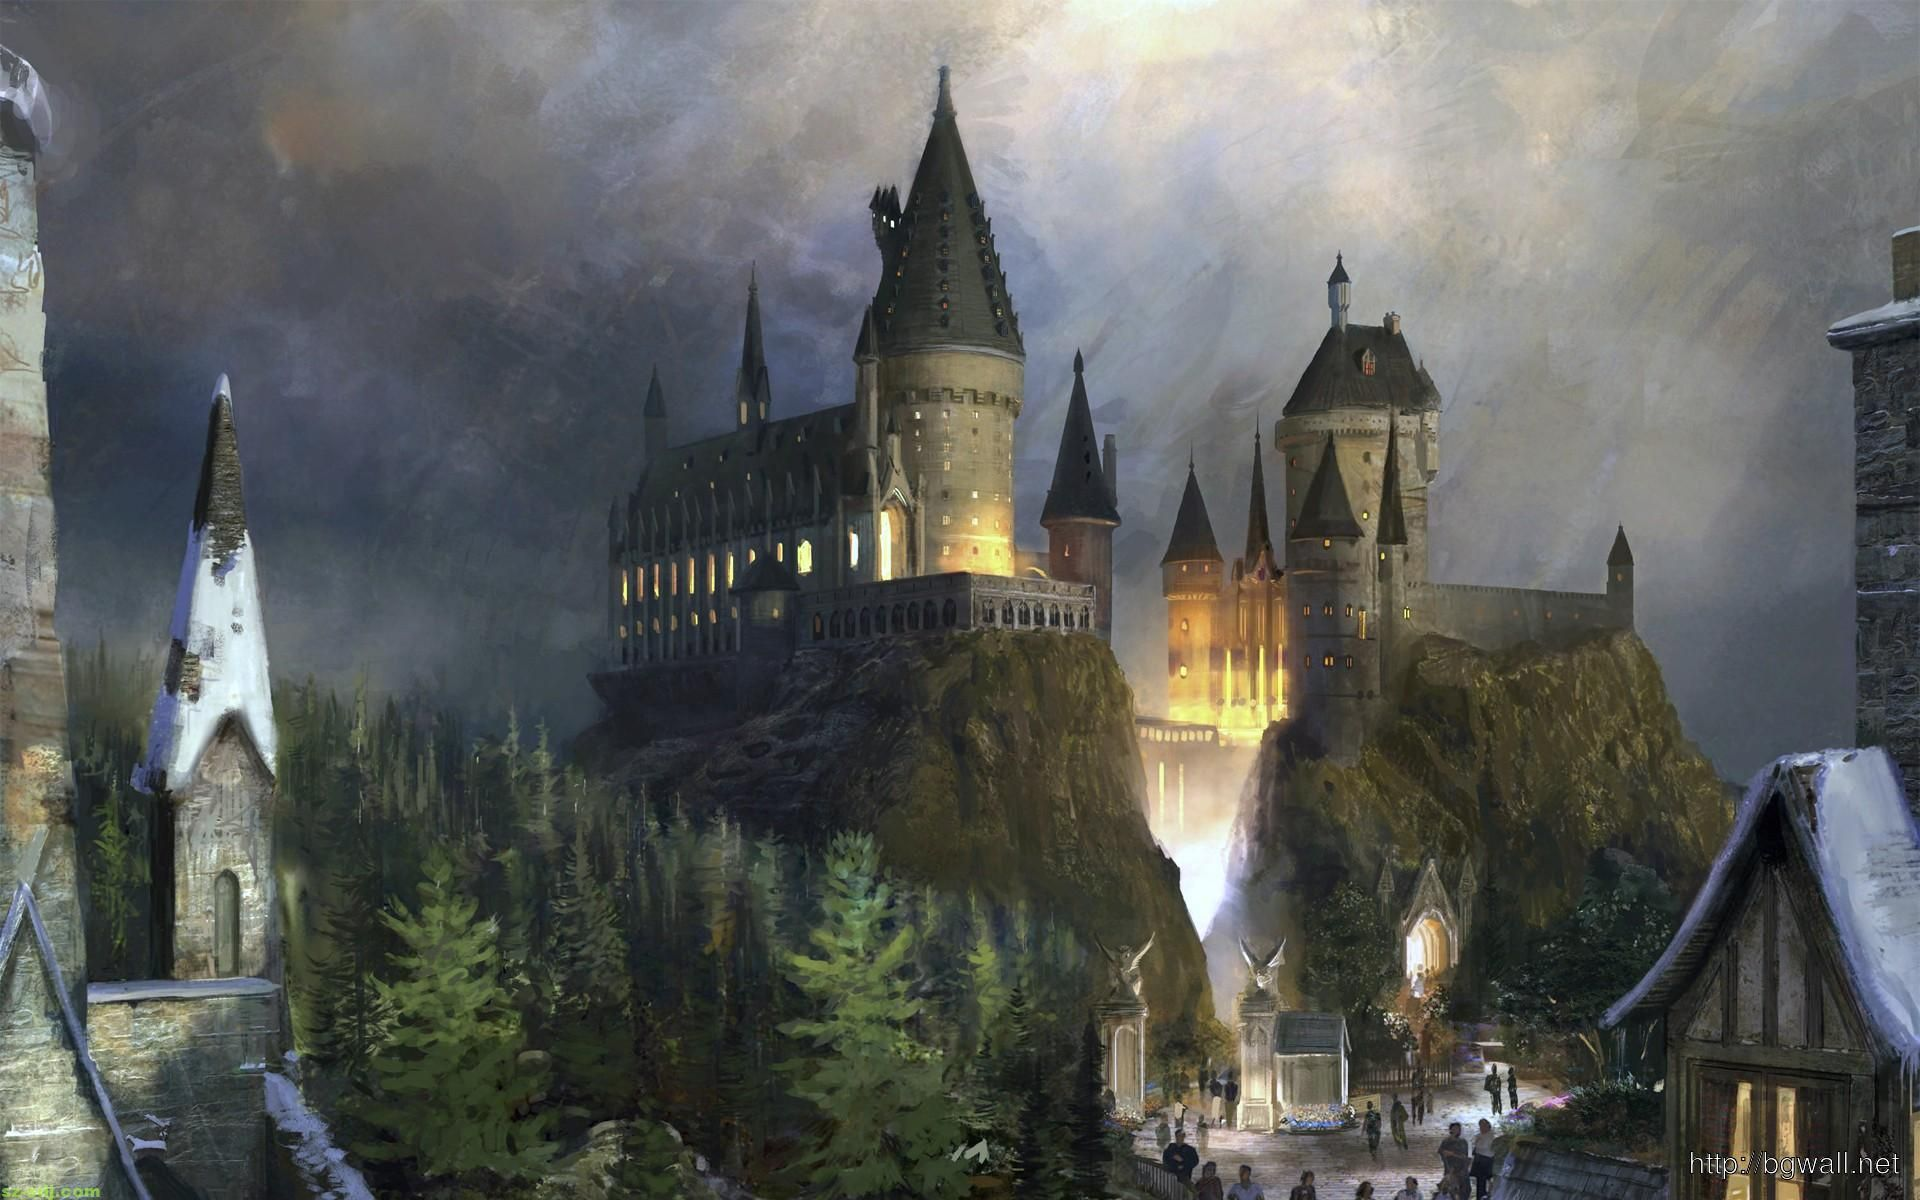 Must see Wallpaper Harry Potter Nature - 45cfc92725c3be5c5fcc783f52240a44  Collection_59871.jpg